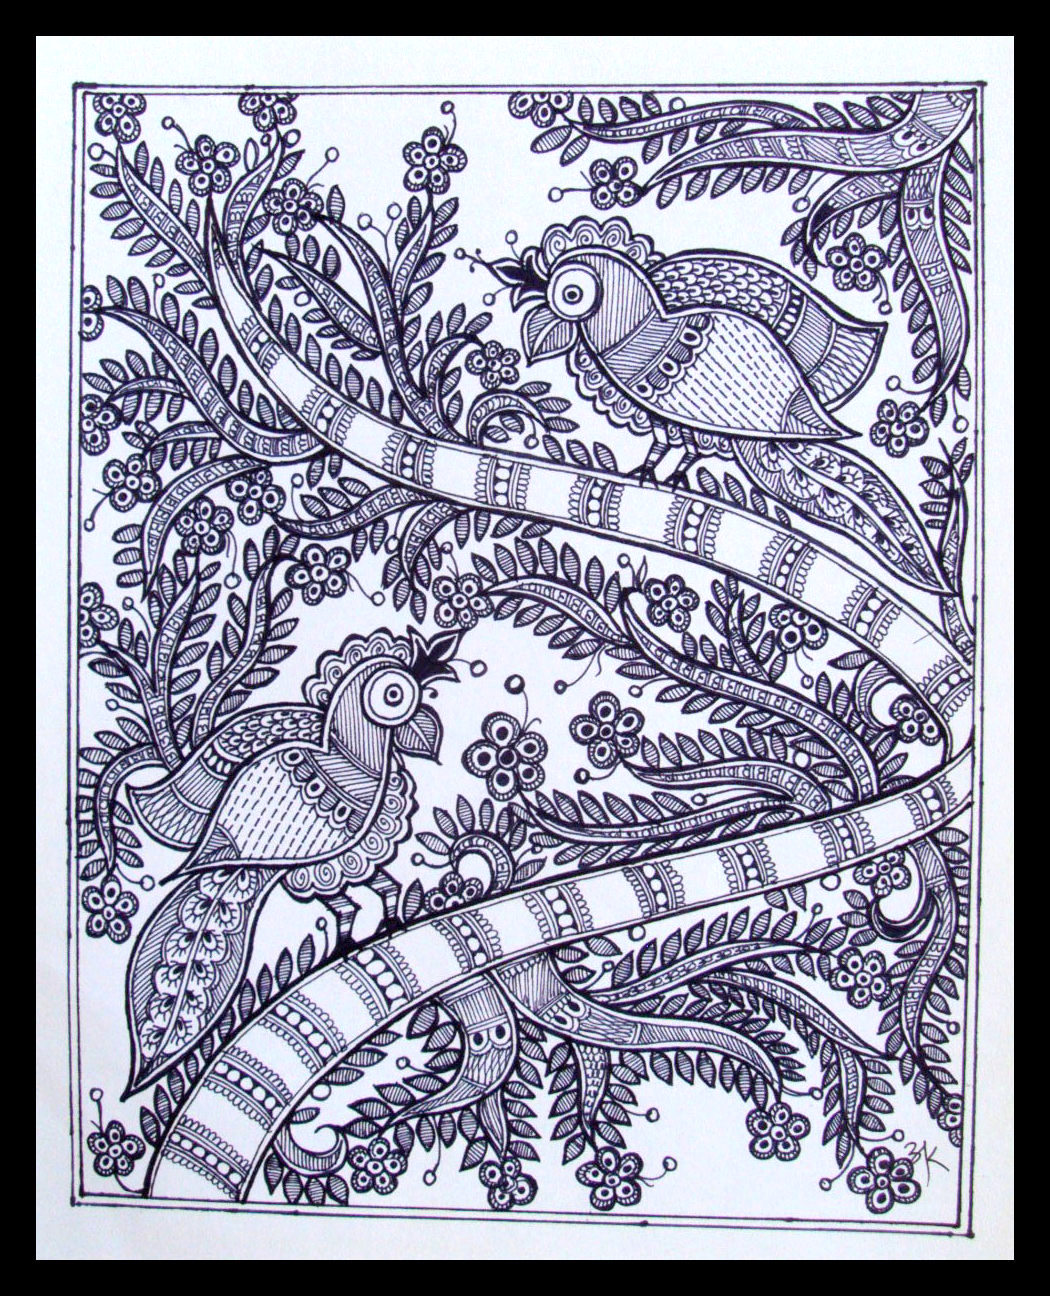 Free Information and News about Handmade Gifts - Handmade Madhubani Paintings - Handmade Gifts India Online - Handmade Giftables for sale